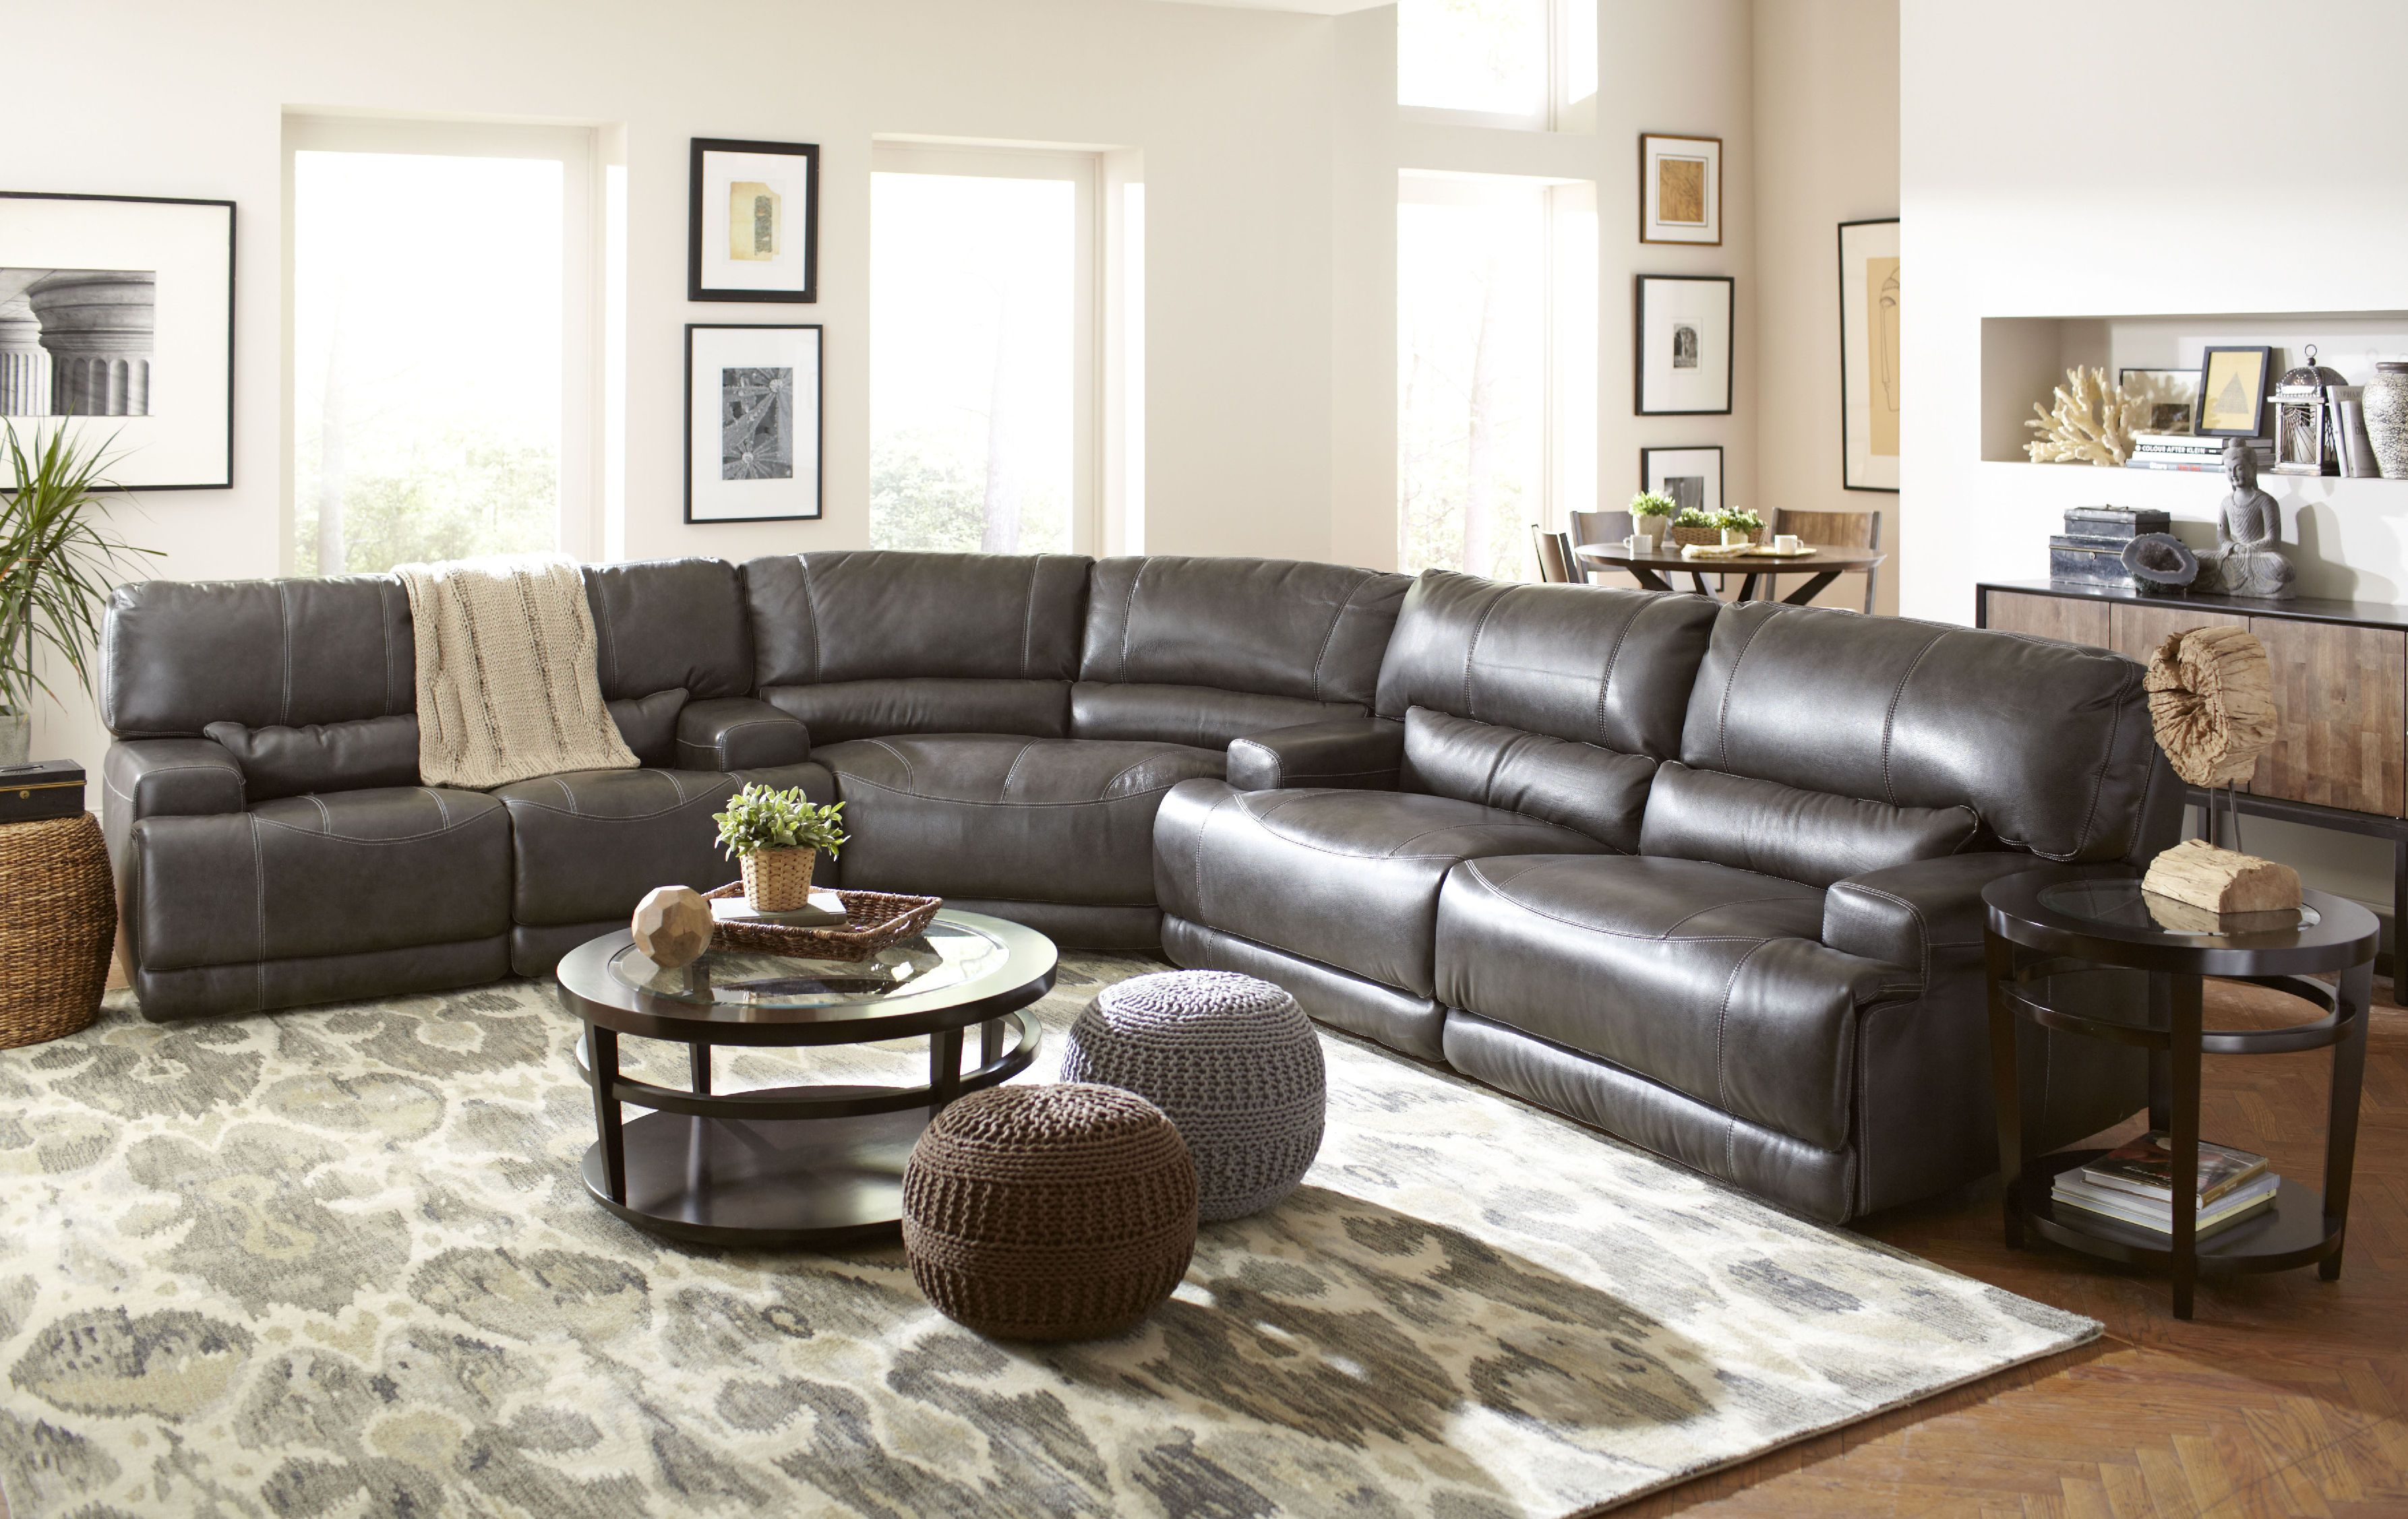 Terrific Stampede 3 Piece Leather Power Sectional Charcoal Gp M089 Evergreenethics Interior Chair Design Evergreenethicsorg